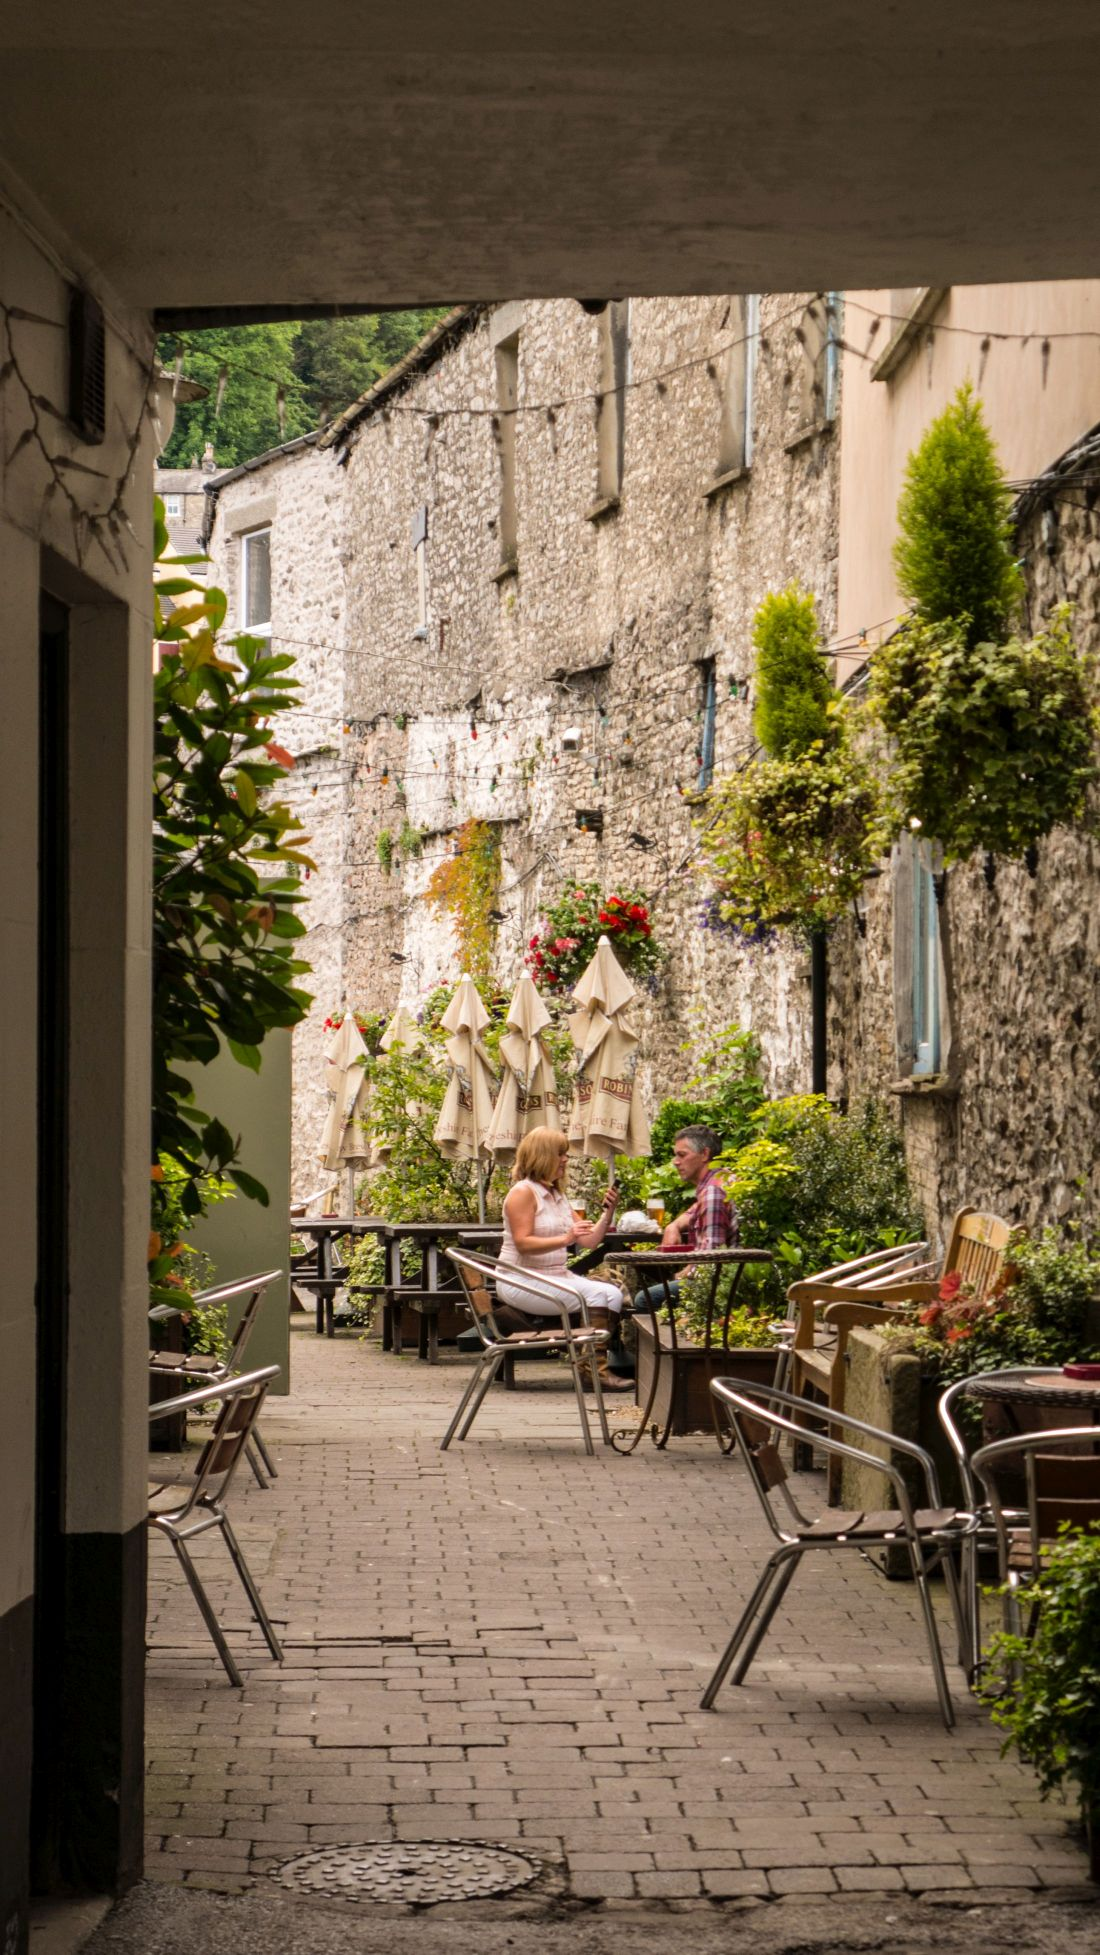 Kendal's famous yards - Smokehouse Yard is an attractive, historic Kendal yard for eating and drinking. Explore Kendal's famous 18th century yards on your next visit.